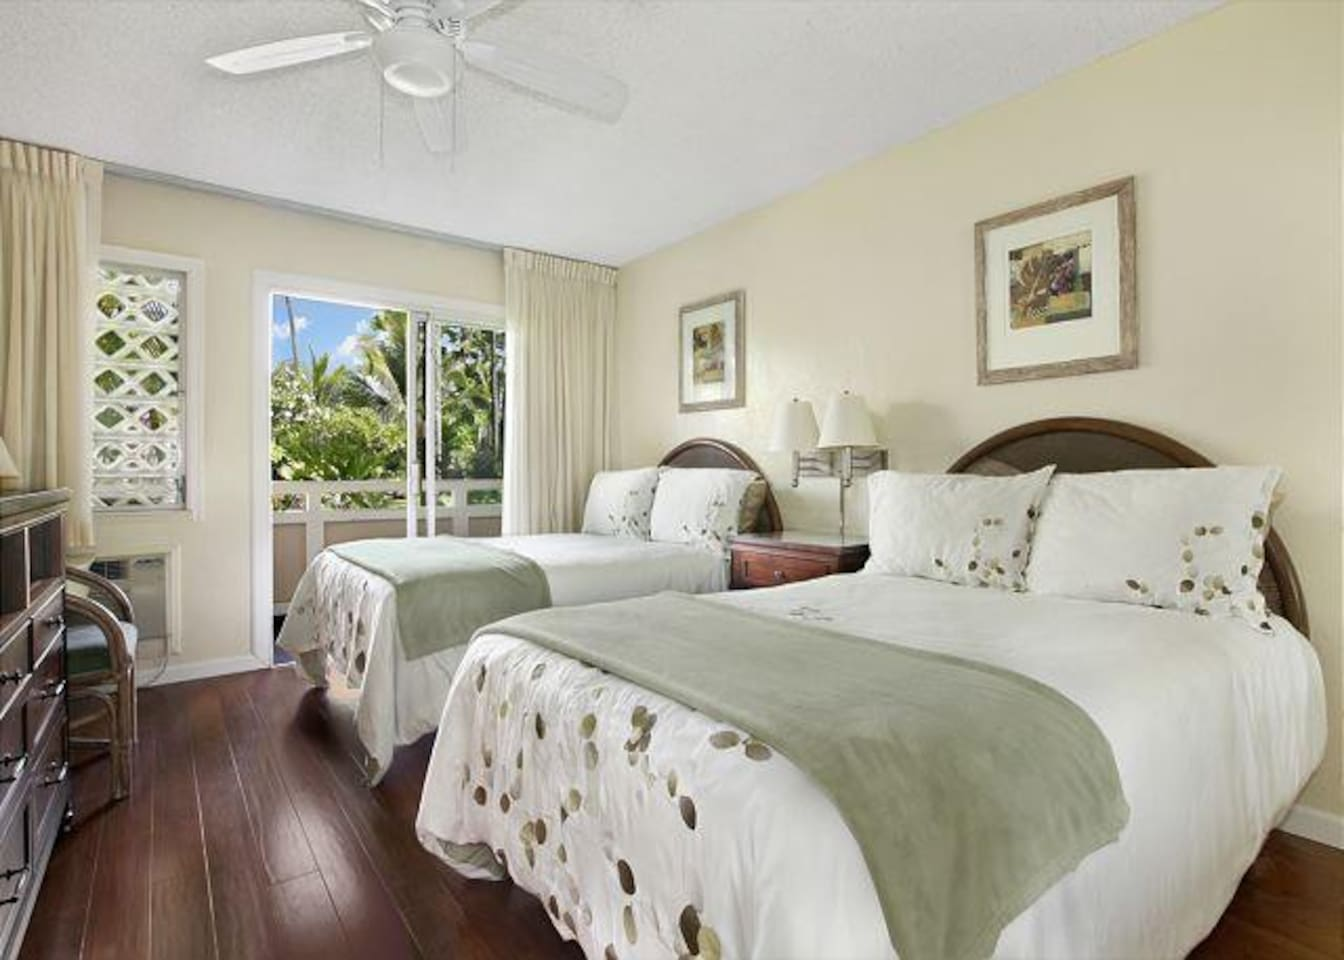 Inviting, fresh, bedroom with 2 double beds and sliding doors out to lanai/deck with  beautiful garden & pool views. Luxurious high thread count linens and rosewood furniture